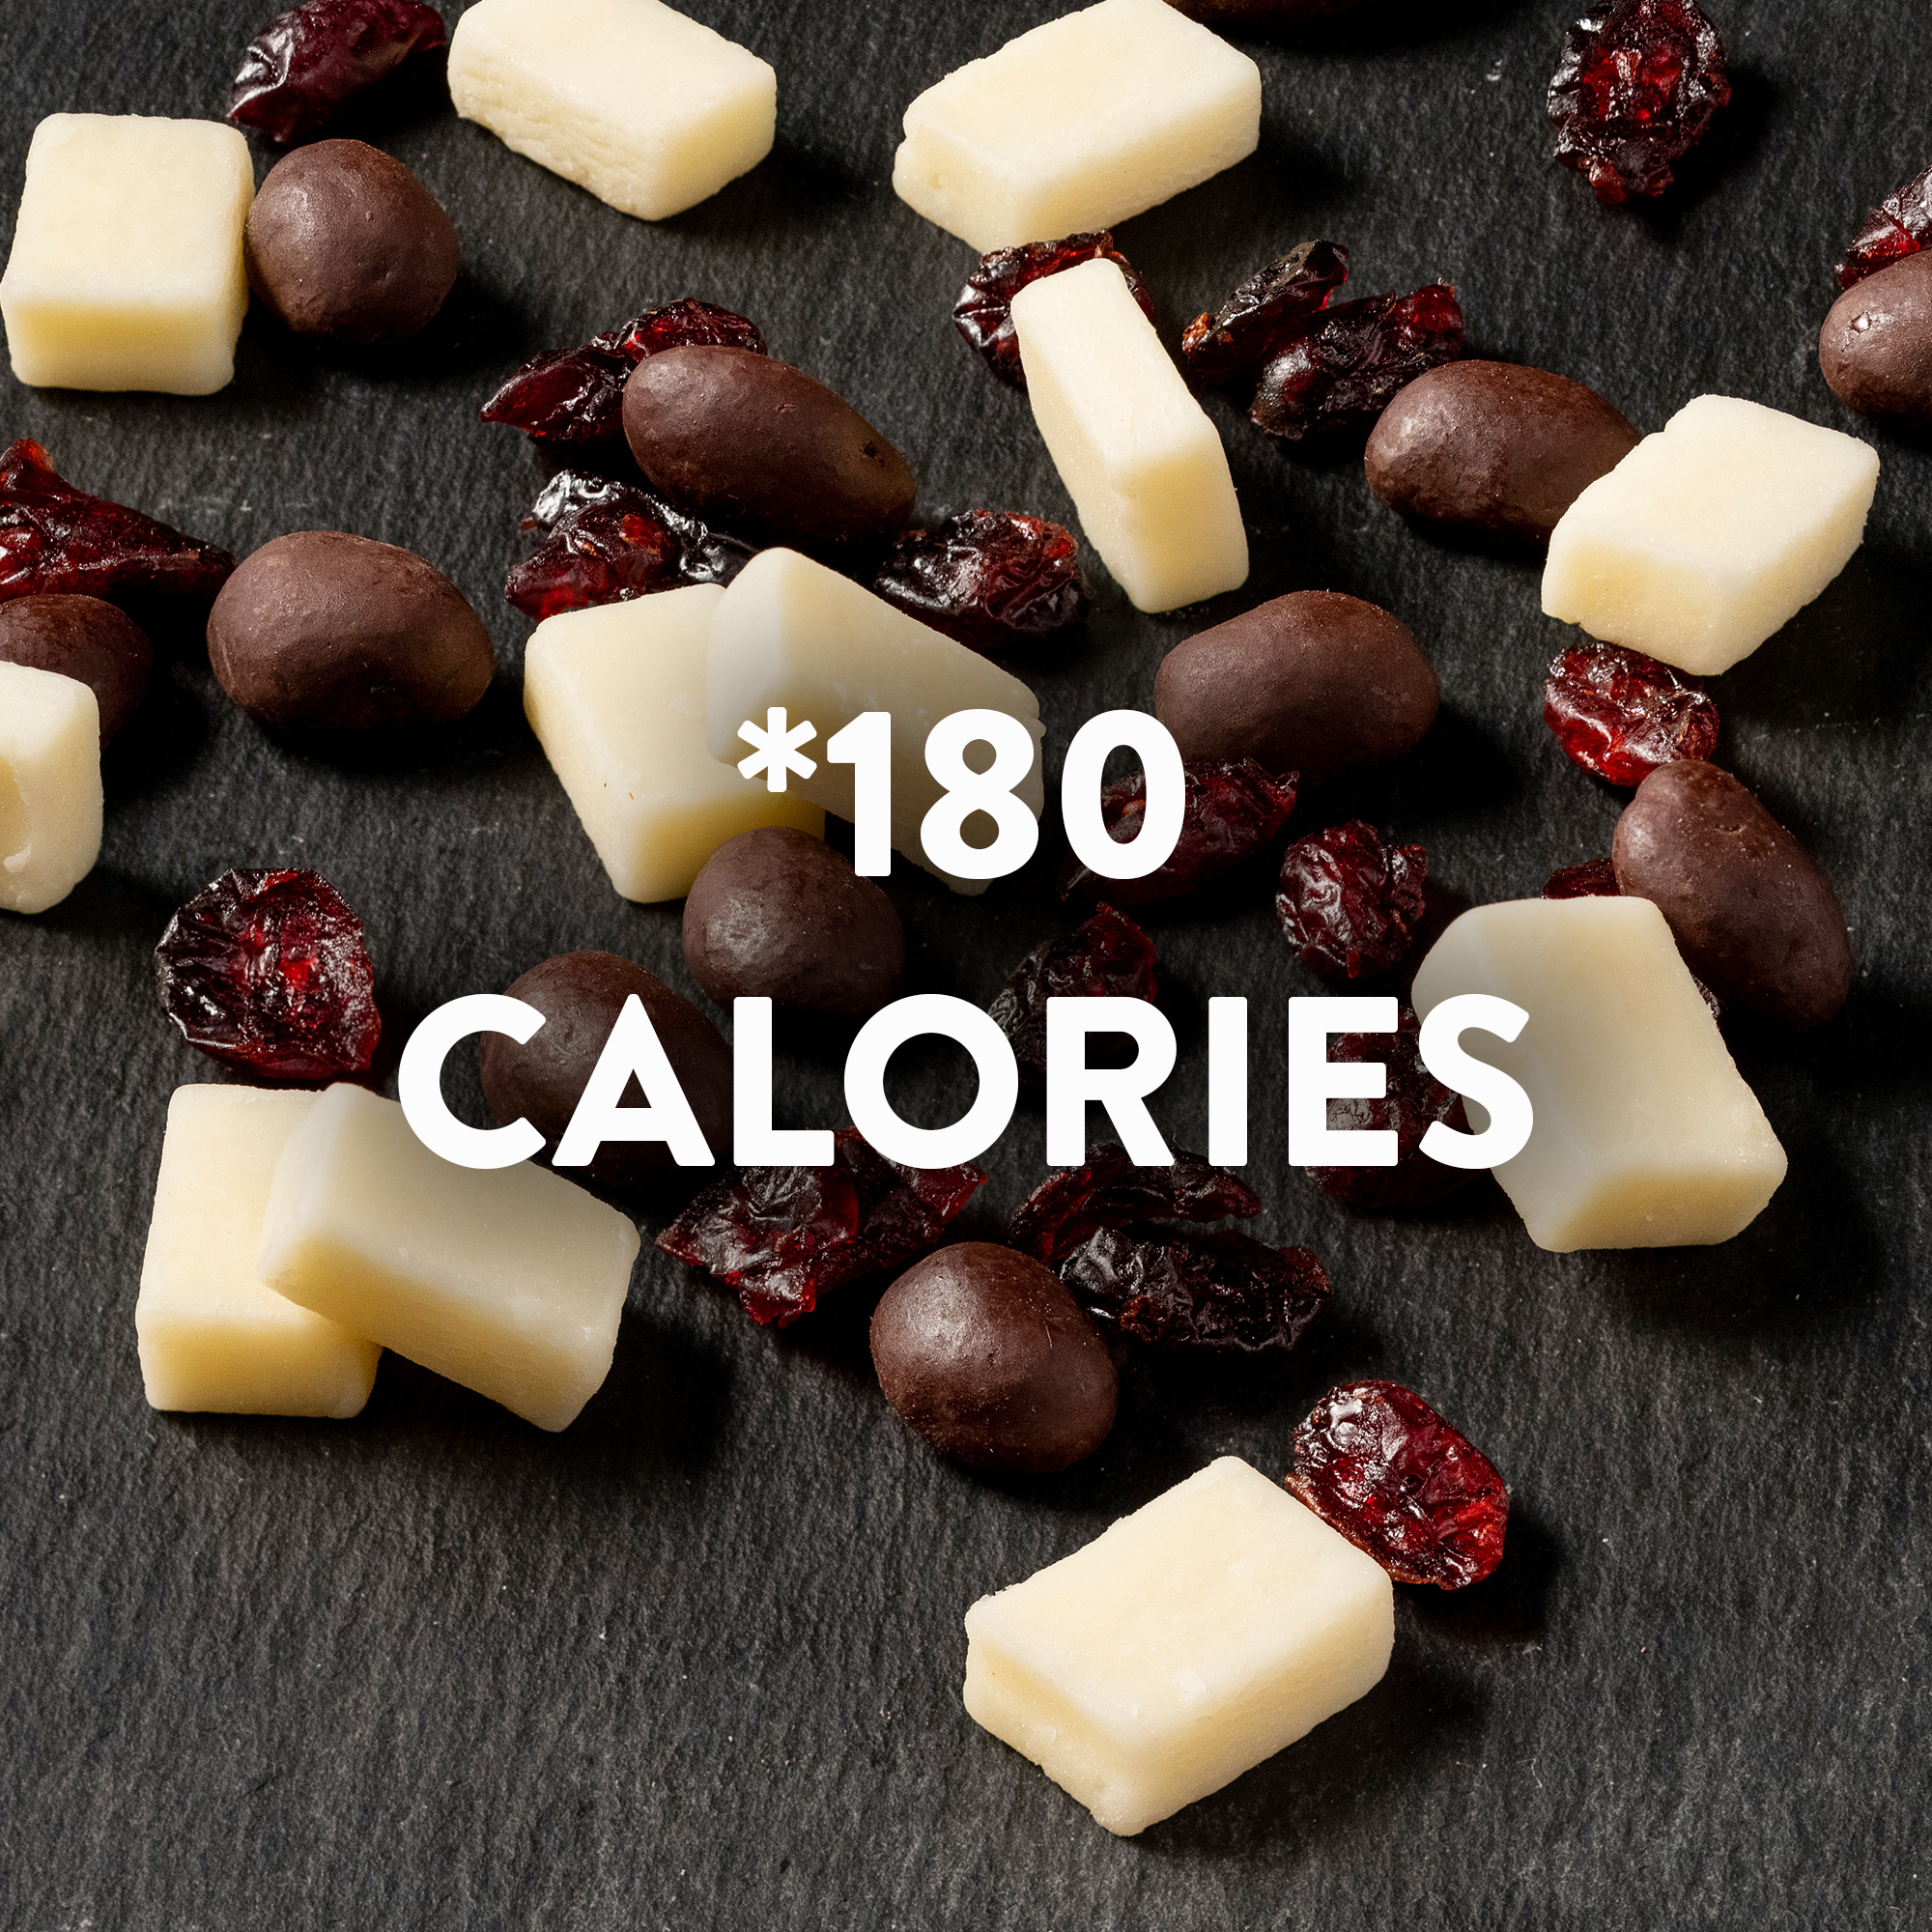 Sargento® Sweet Balanced Breaks®, Monterey Jack Natural Cheese, Dried Cranberries and Dark Chocolate Covered Peanuts